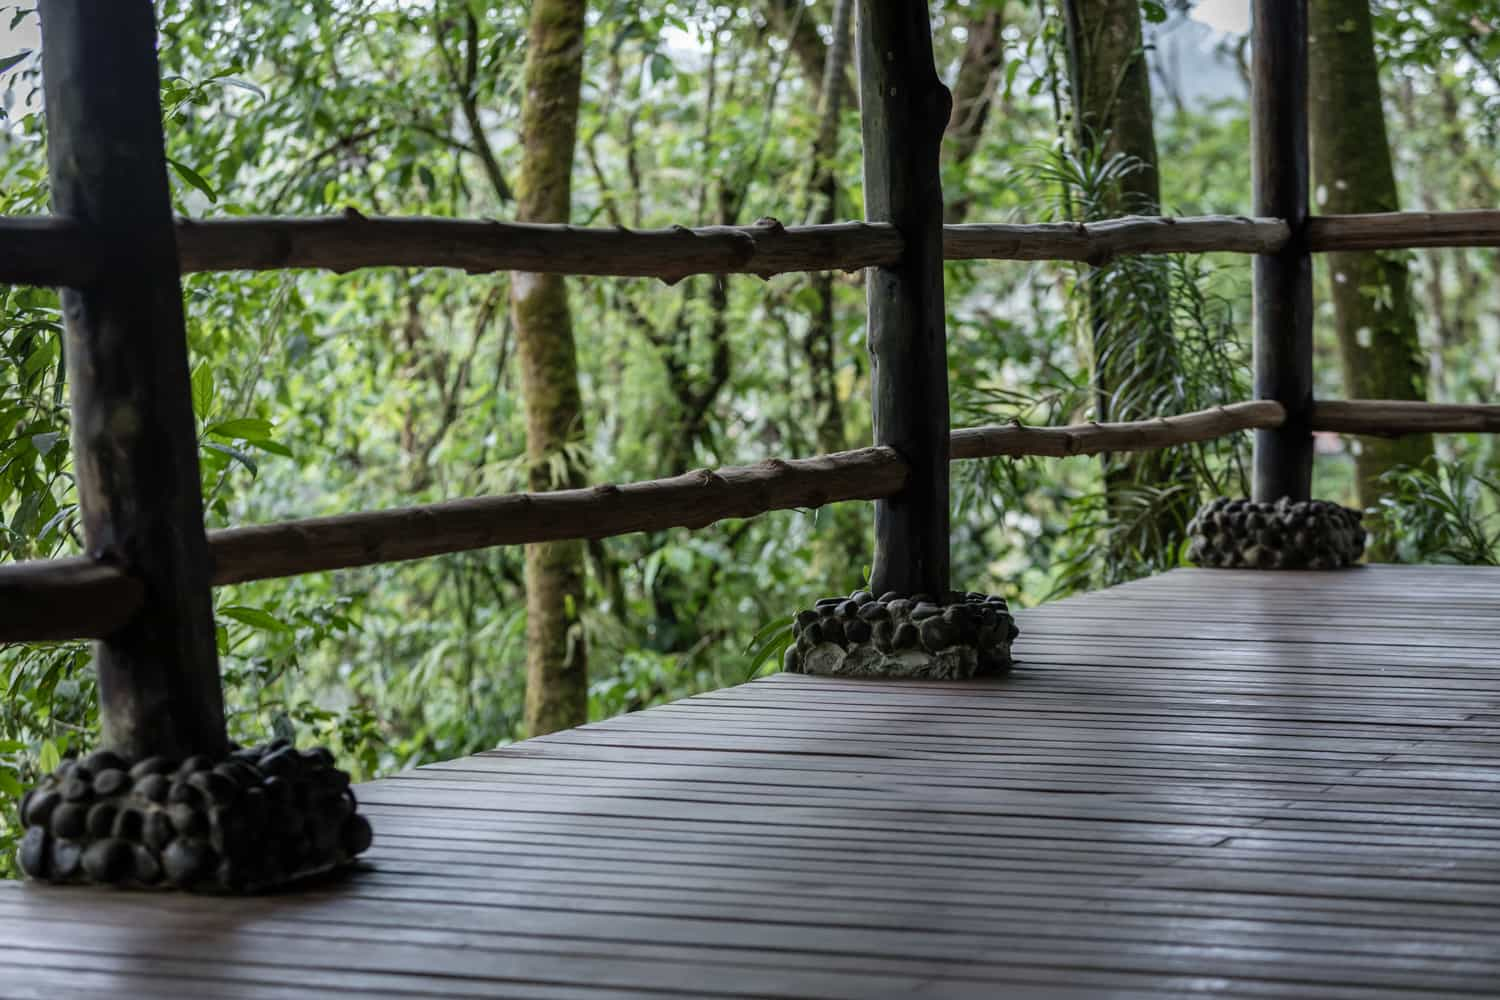 Great place for wedding in Costa Rica at rainforest pavilion at Rio Celeste Hideaway Hotel.